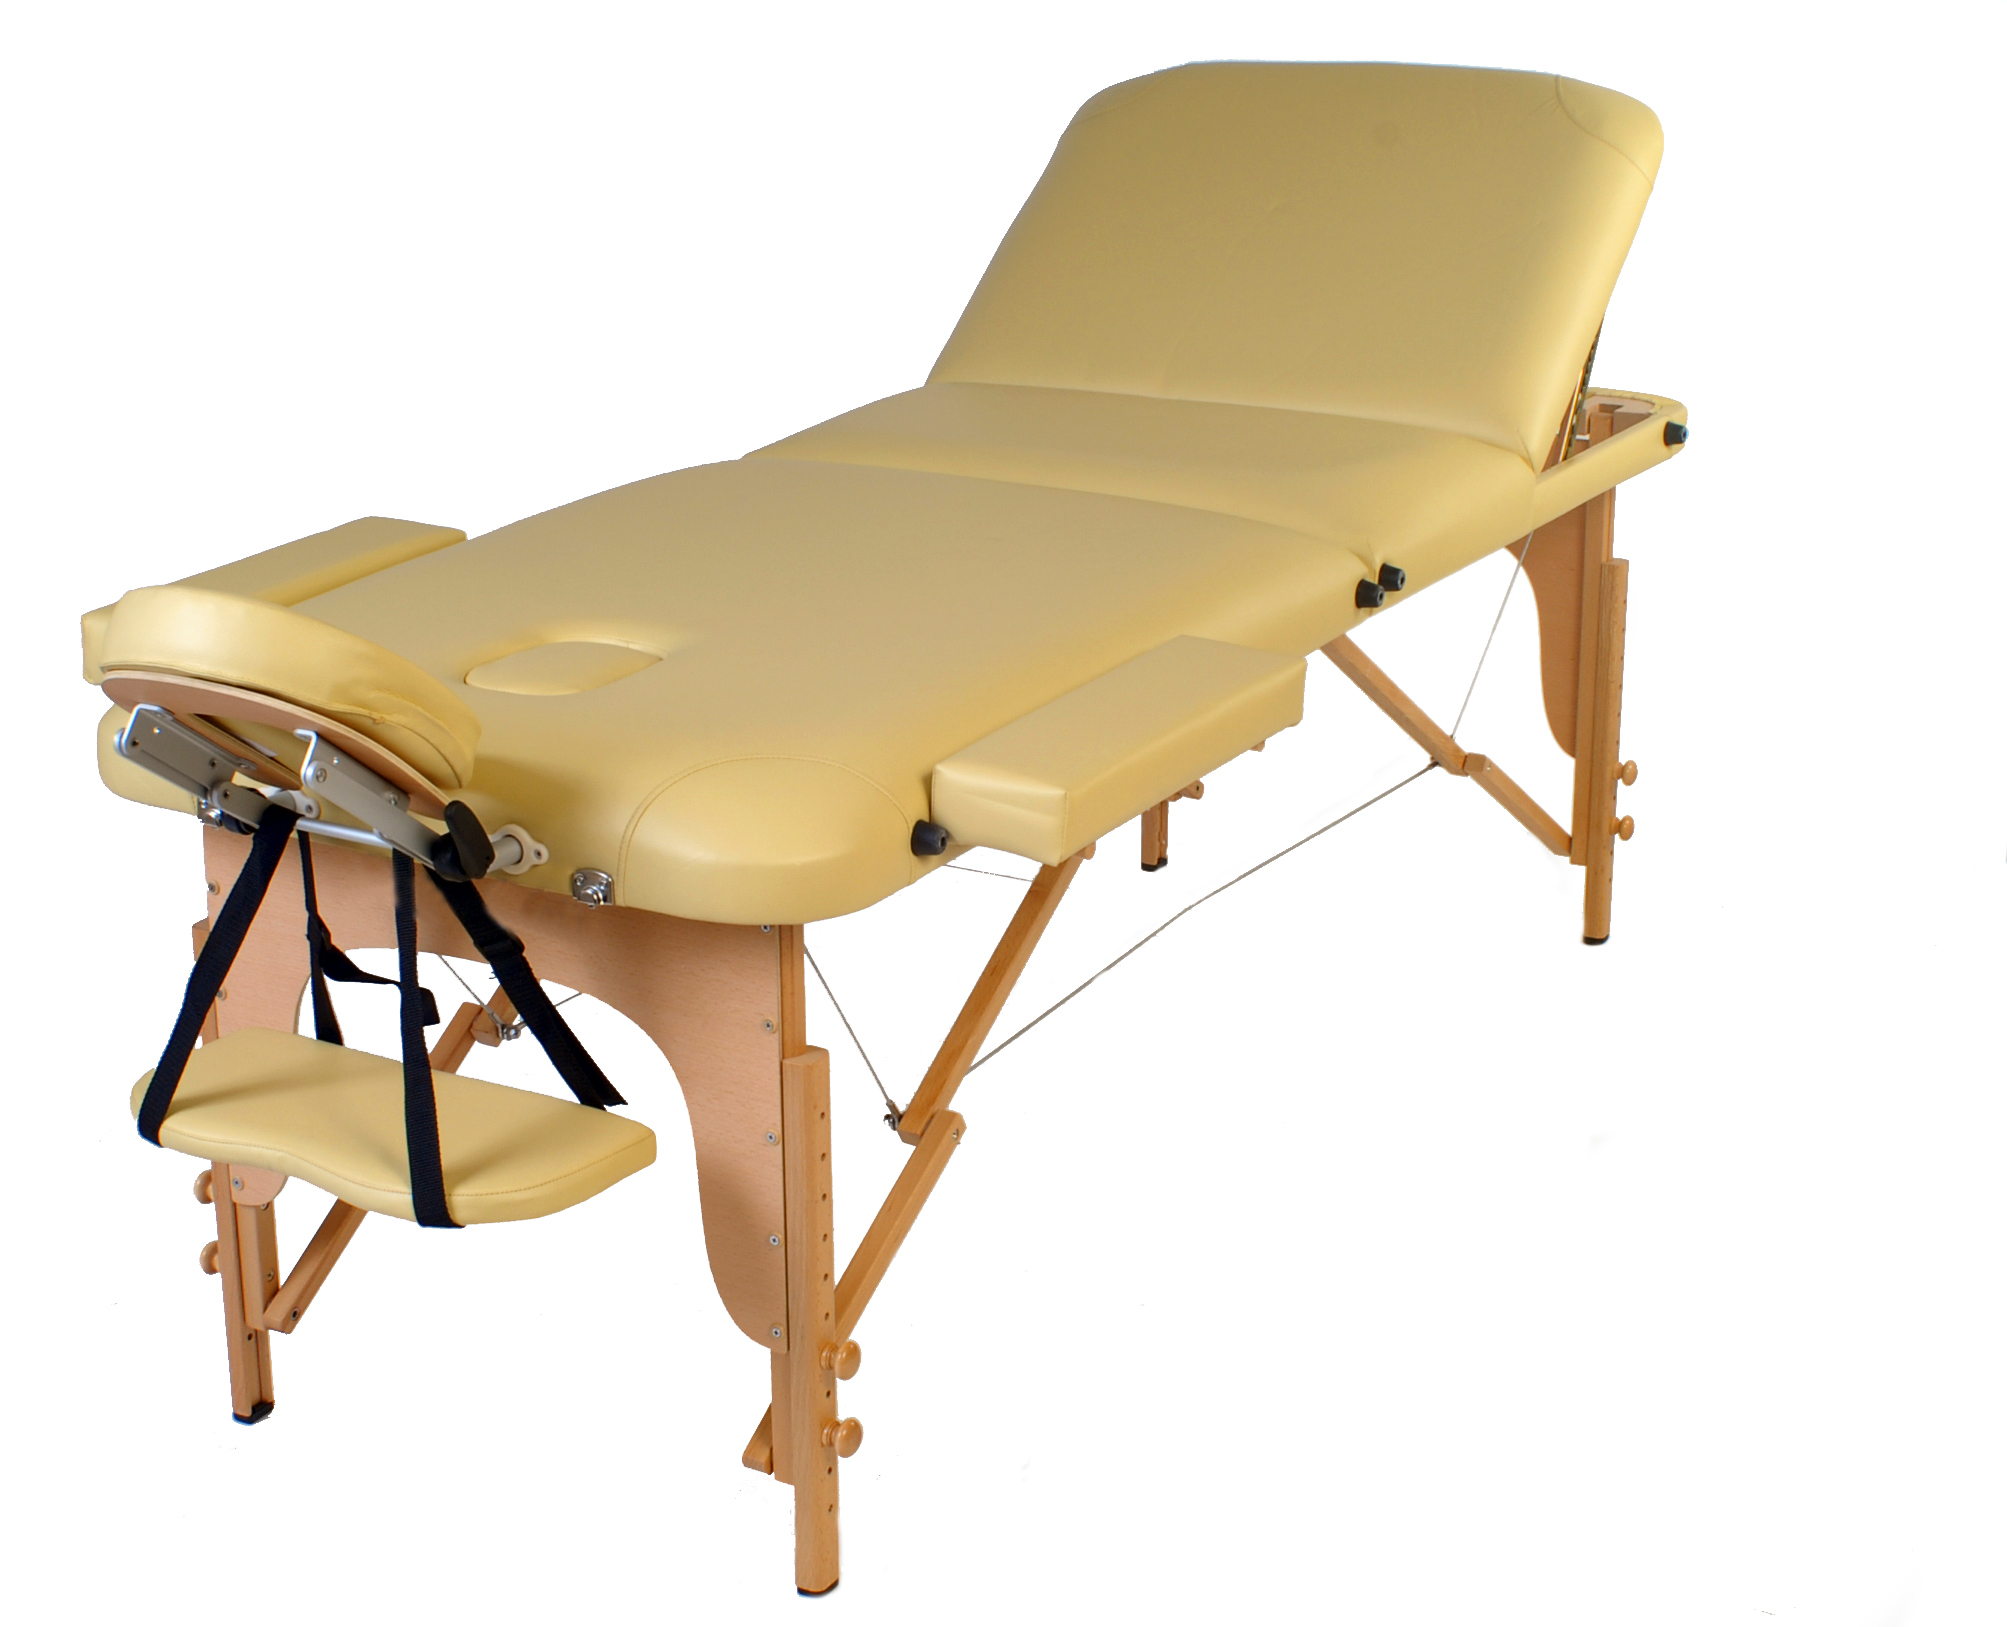 Nos produits aurizen sarl tables de massages pliantes - Tables de massage pliante ...